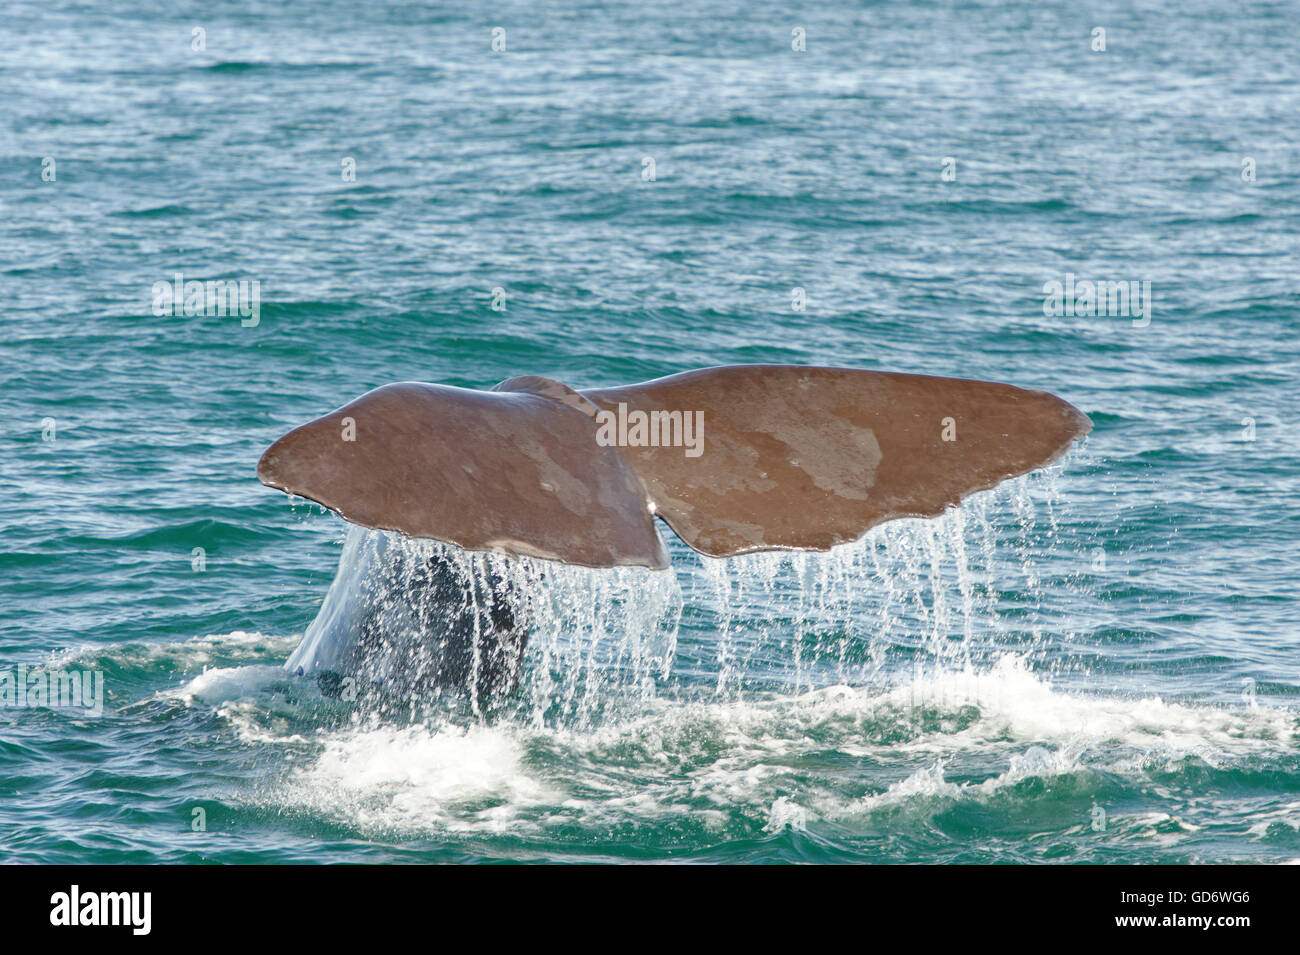 Sperm whale diving to hunt for giant squid off the Kaikoura Coast, South Island, New Zealand. - Stock Image